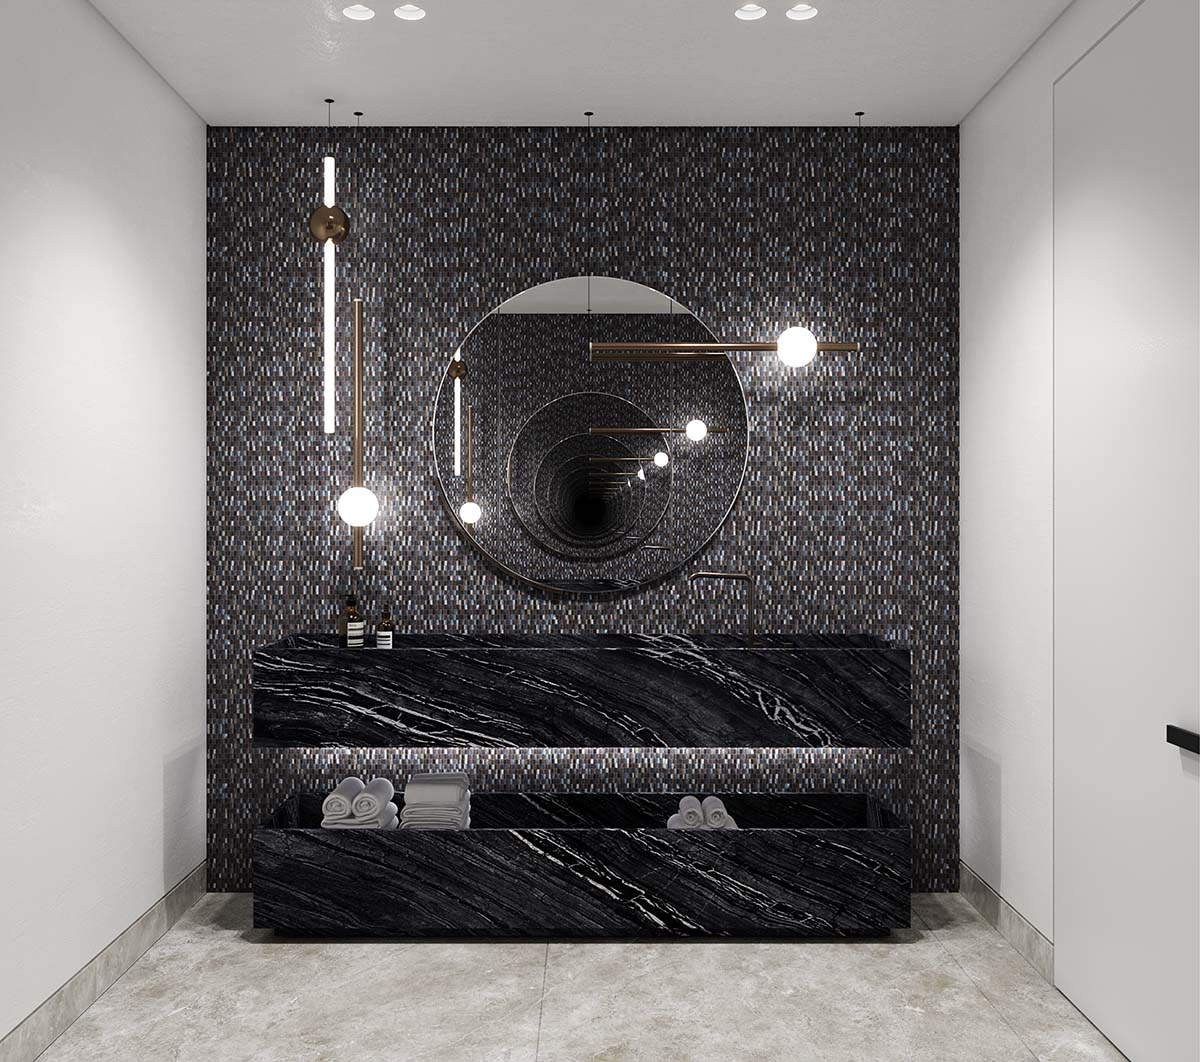 Bathroom of luxury private residential in Rose Bay using Dark marb;e and stone